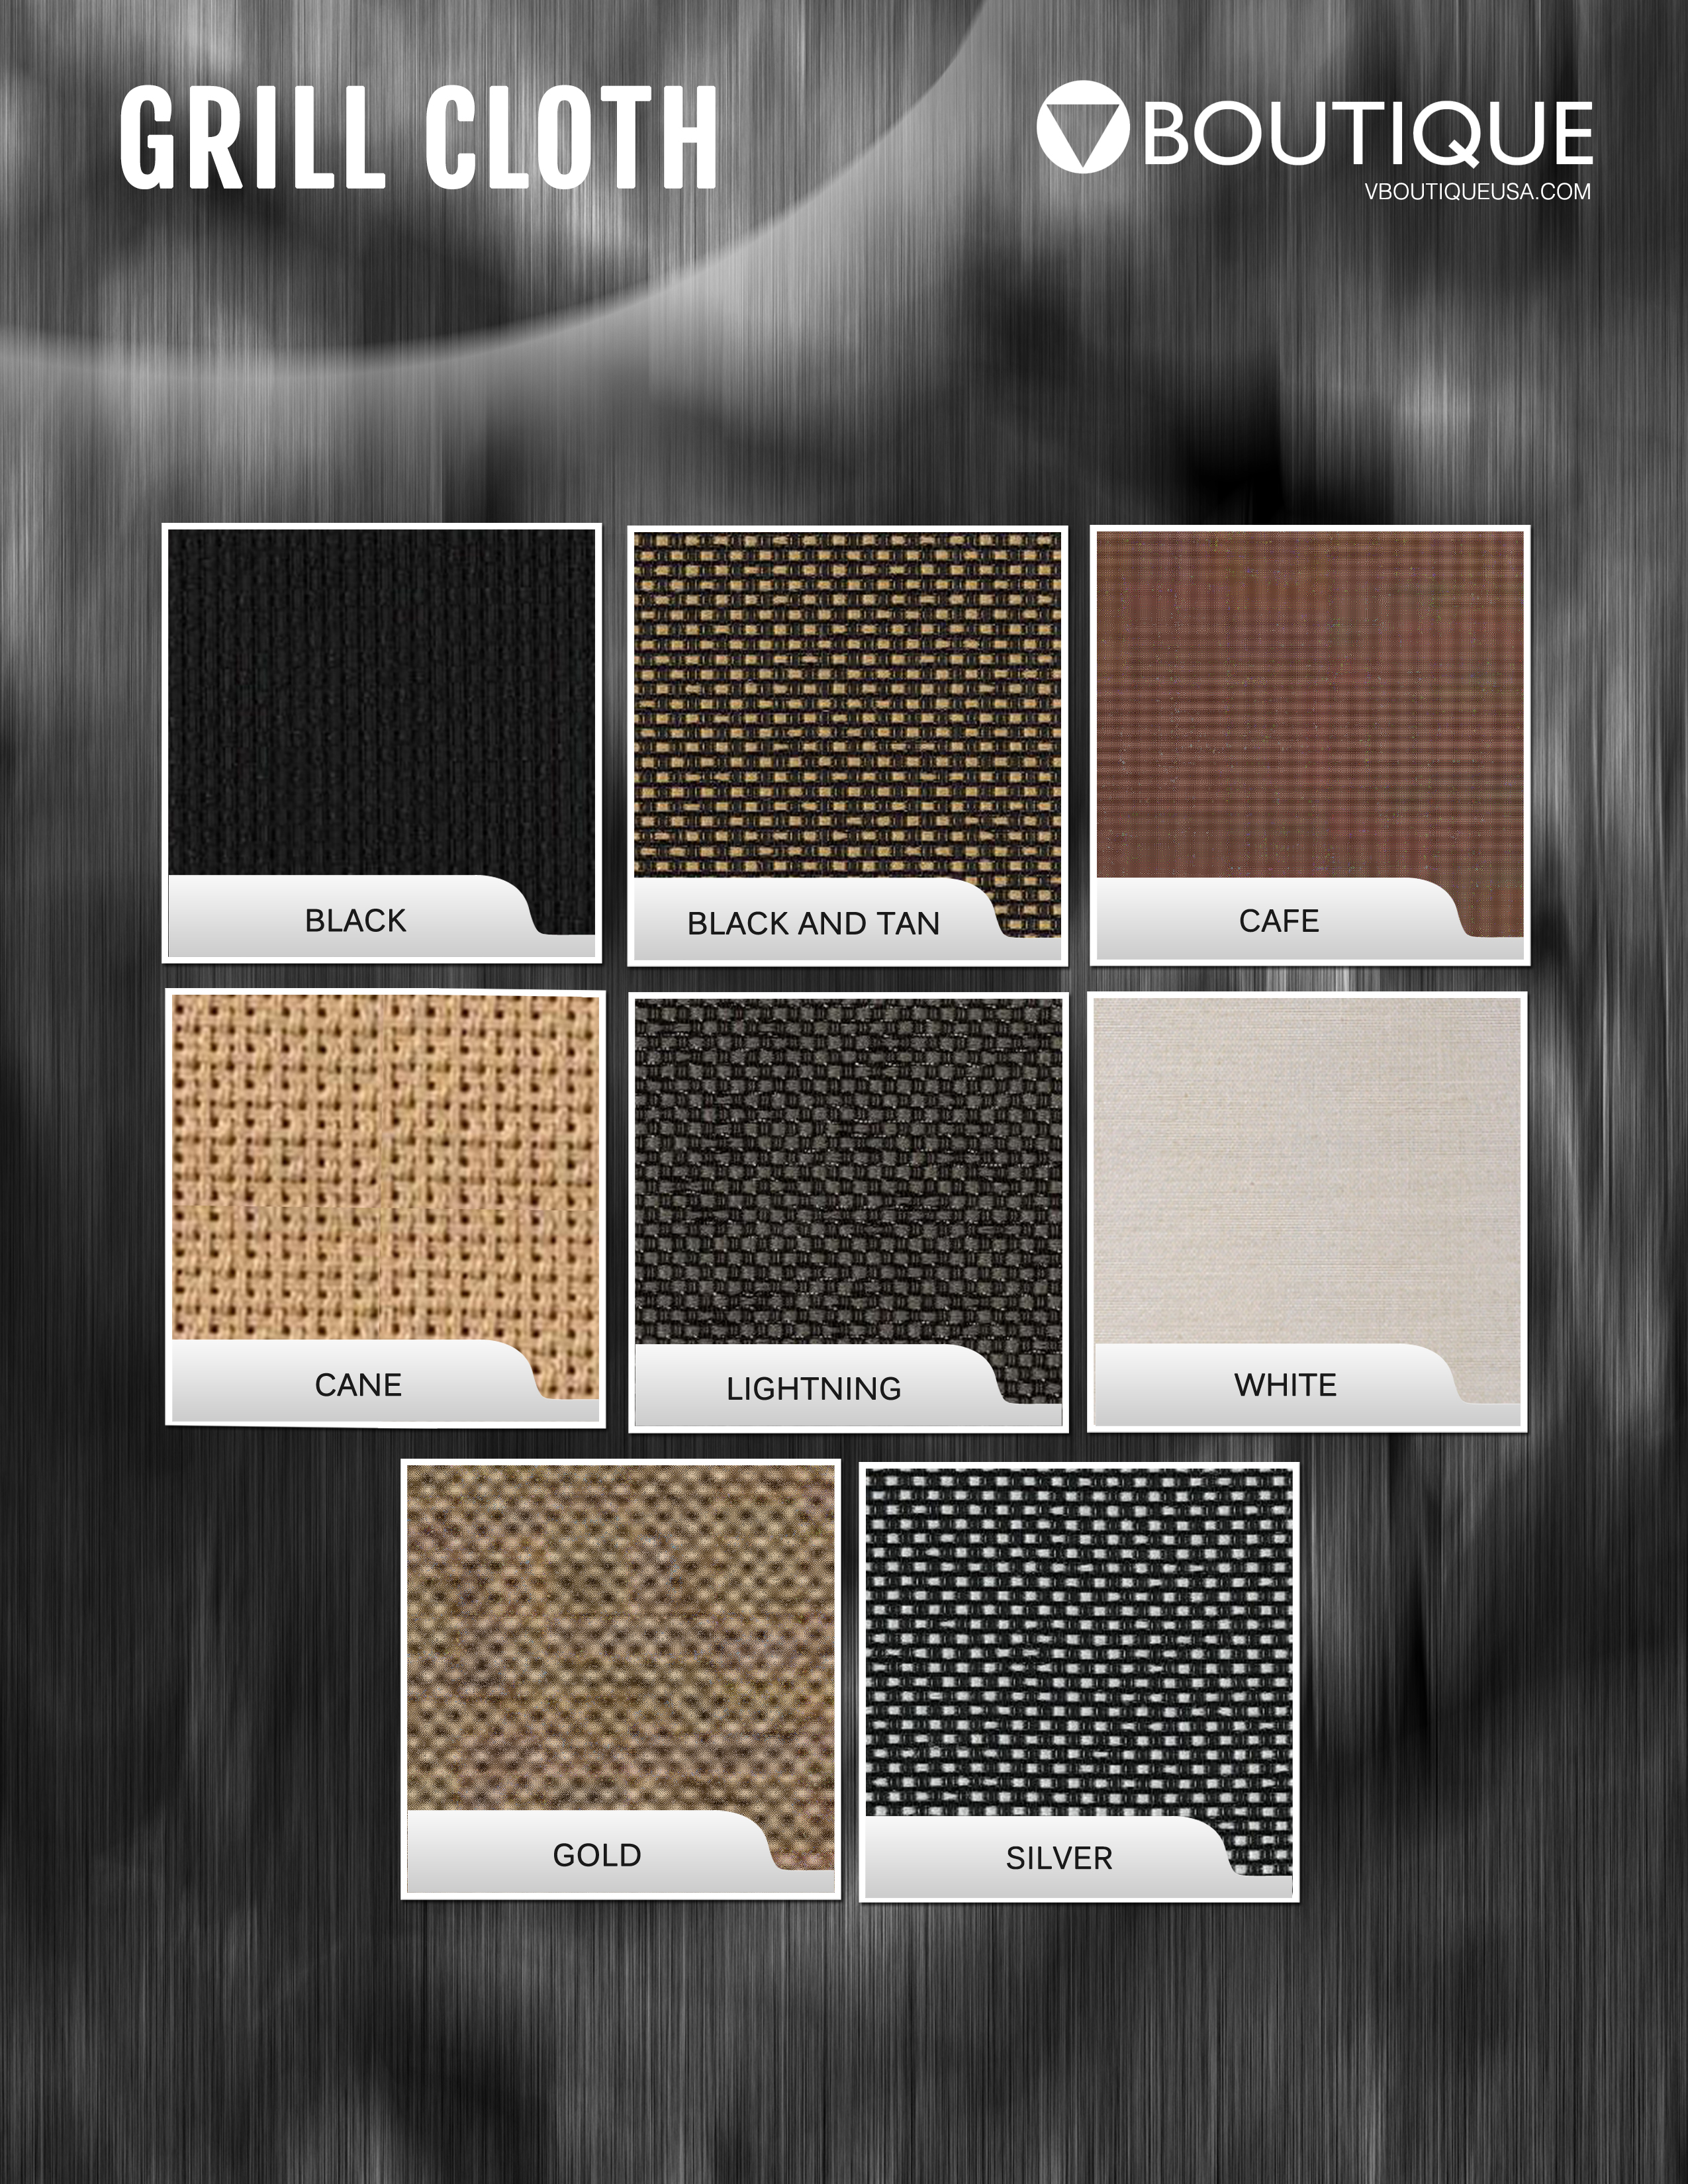 V Boutique 2018 Grill Cloth Swatches